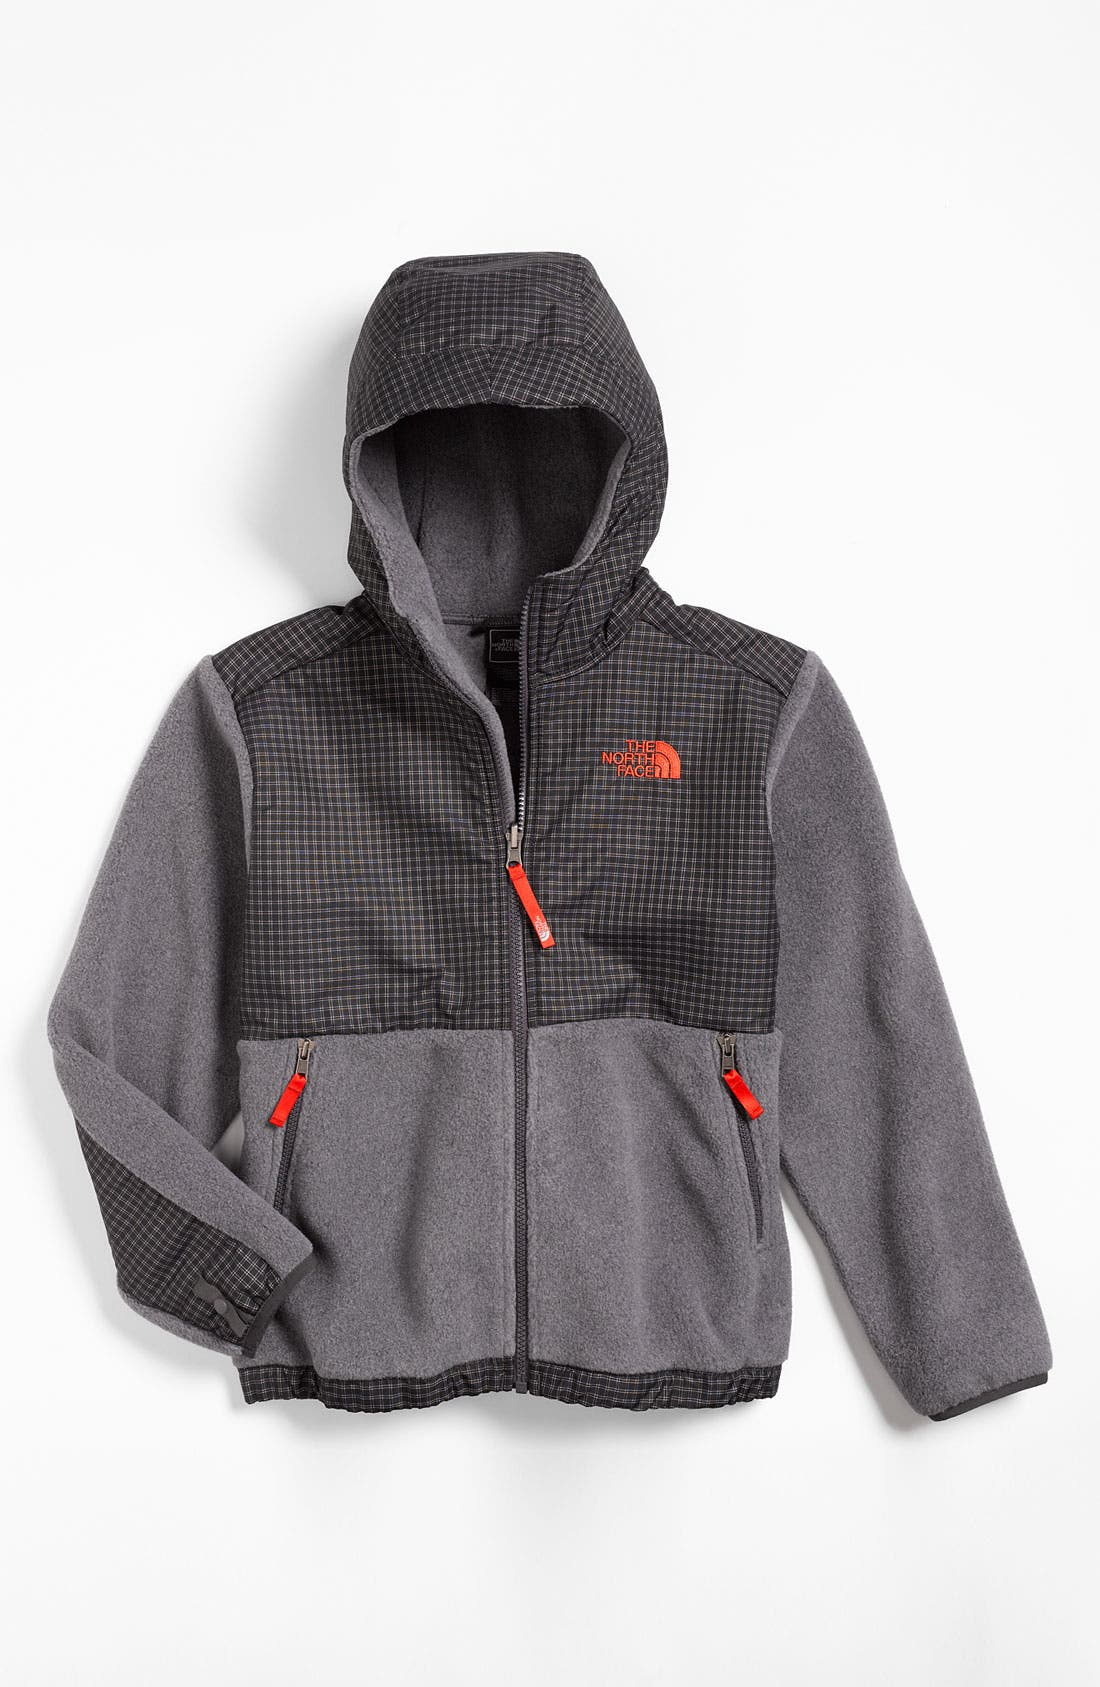 Main Image - The North Face 'Denali' Fleece Jacket (Little Boys)